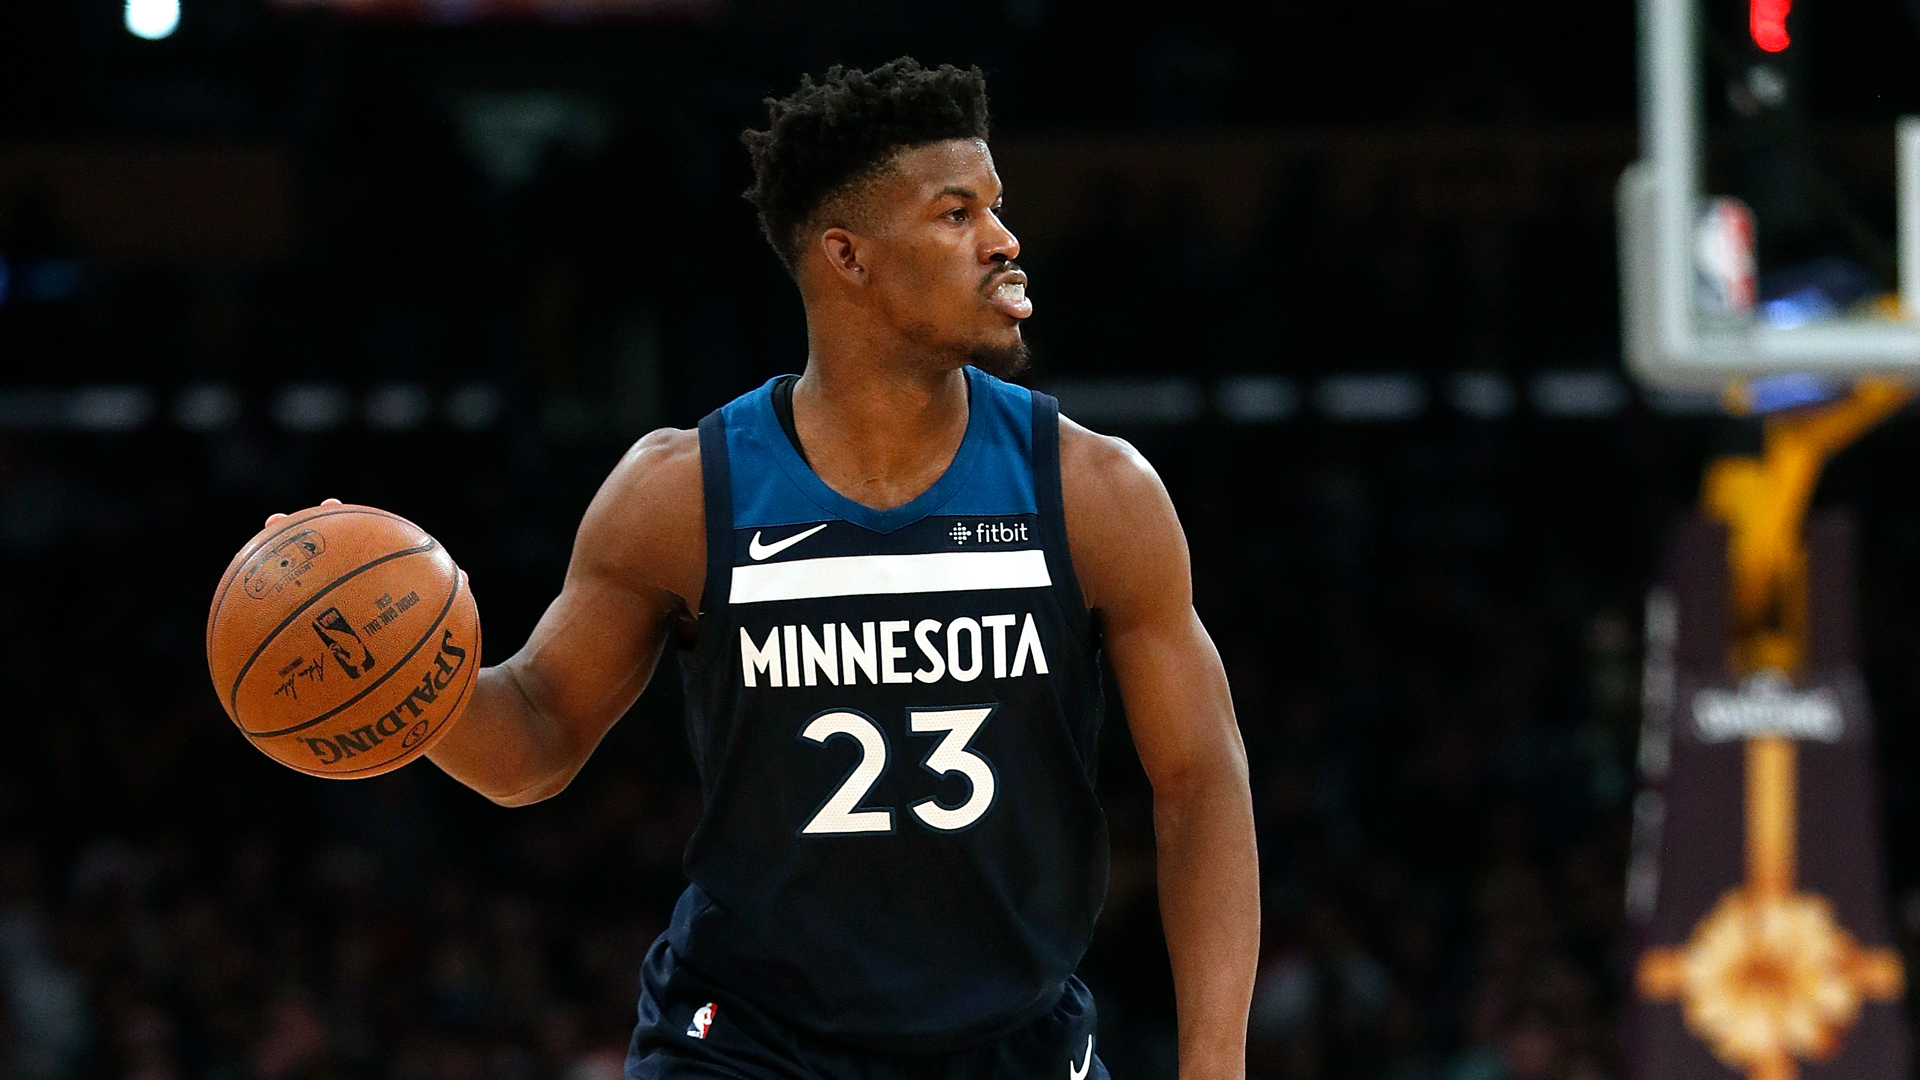 Jimmy Butler Injury Update Timberwolves Star Forward Reportedly To Miss 4 To 6 Weeks Basketball News Stadium Astro